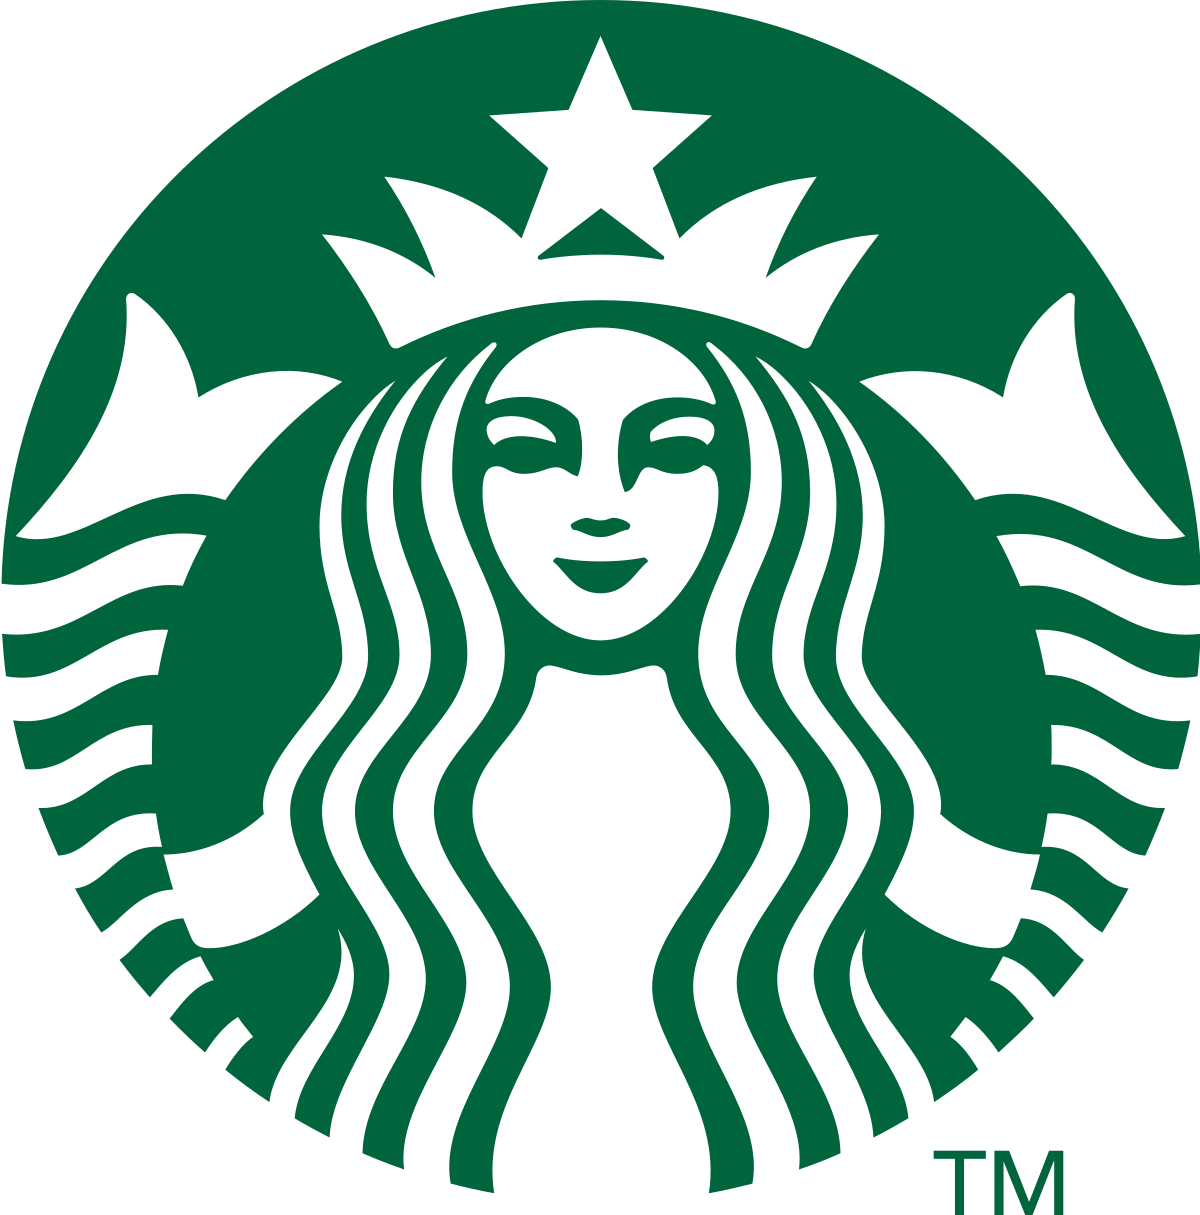 clipart transparent library Starbucks